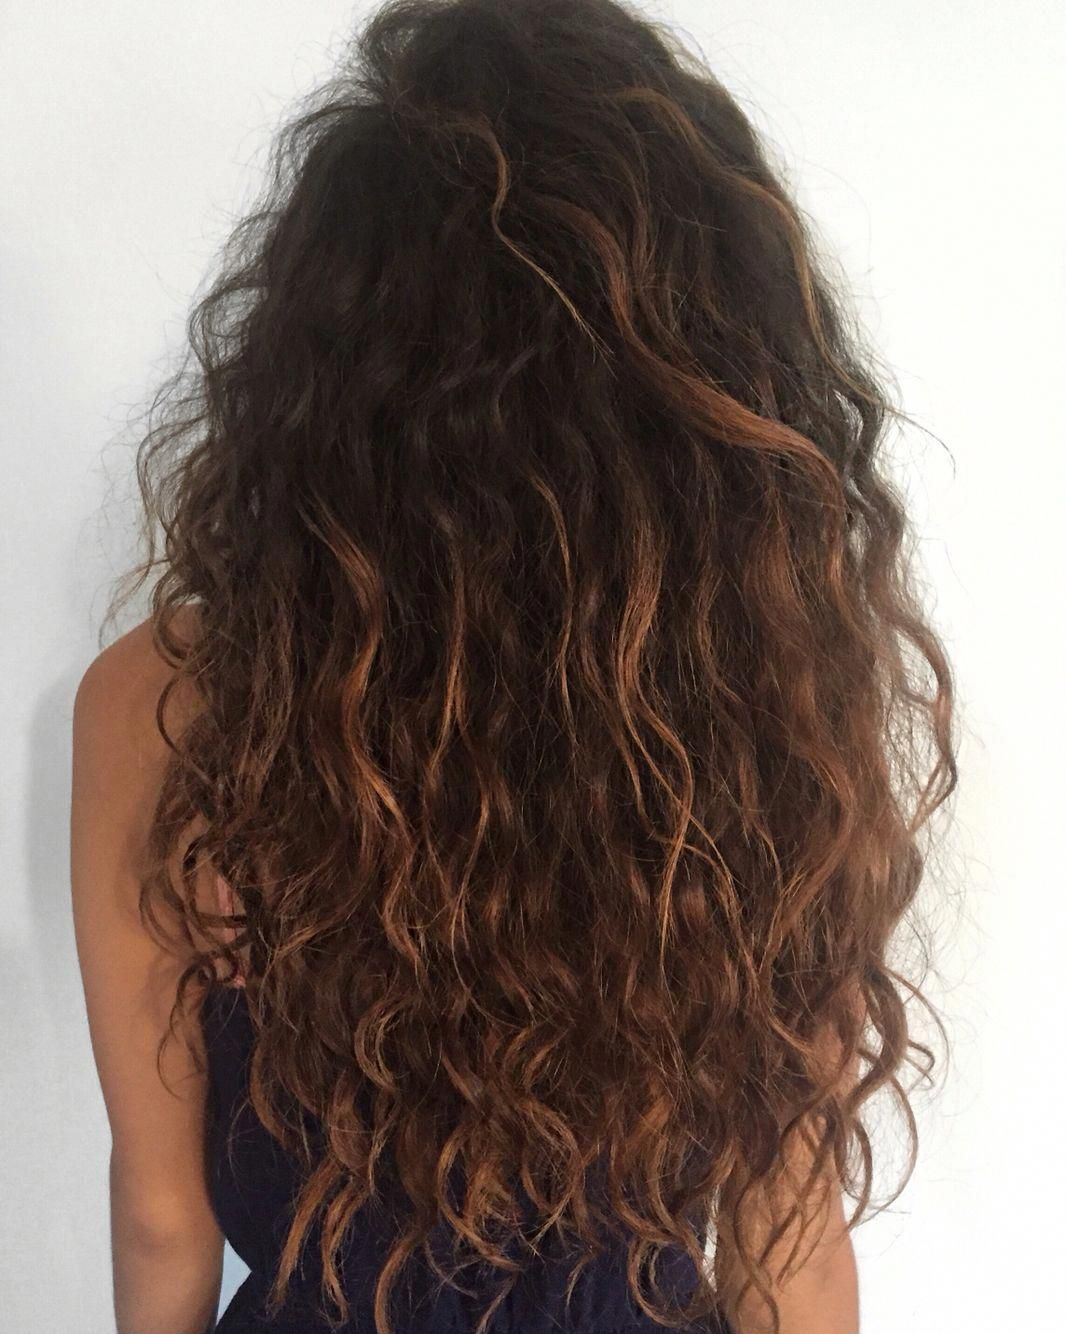 These Curly Natural Hairstyles Are Fabulous Curlynaturalhairstyles Hair Styles Natural Wavy Hair Long Curly Hair